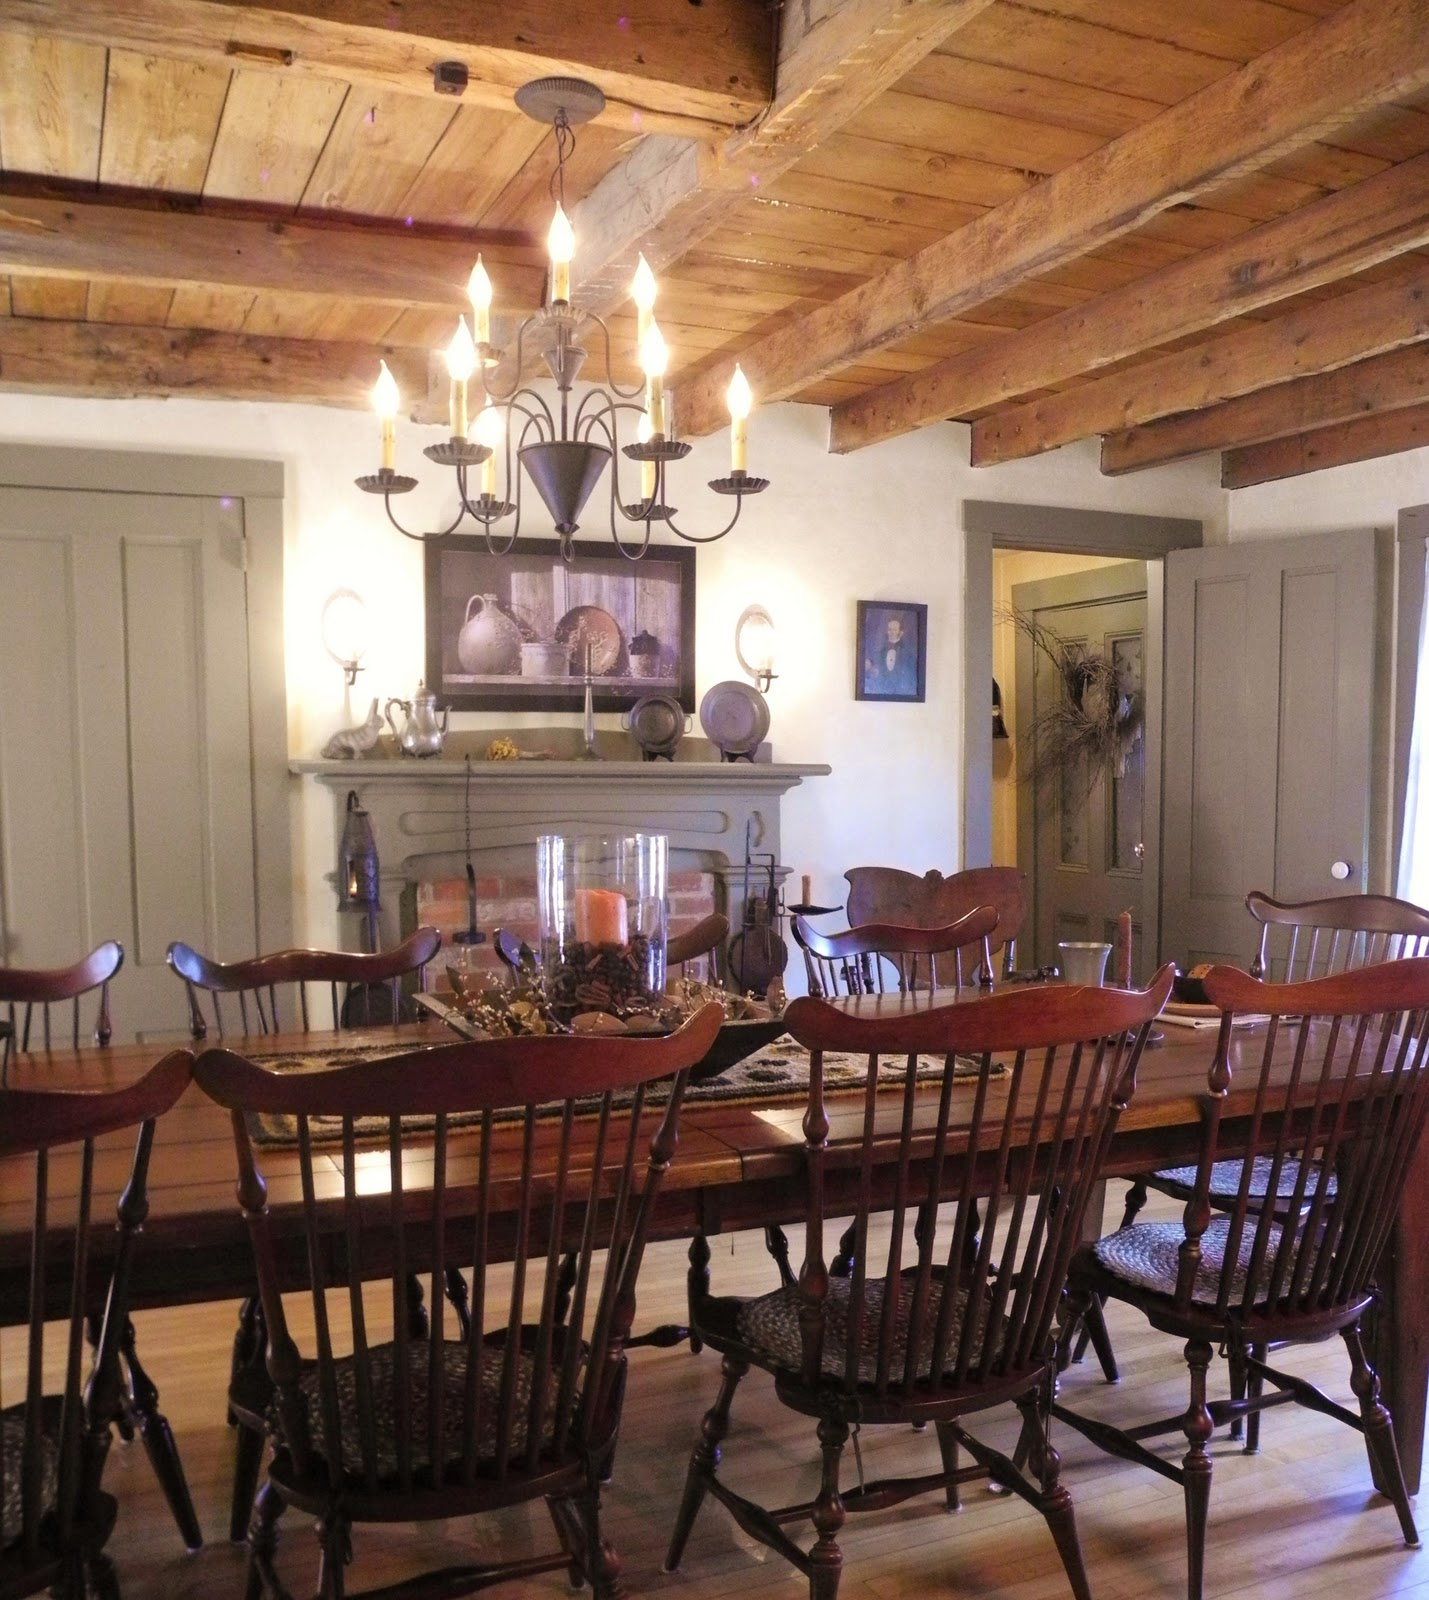 Colonial Kitchen And Great Room Addition: A Primitive Place & Country Journal Magazine: Spring 2012